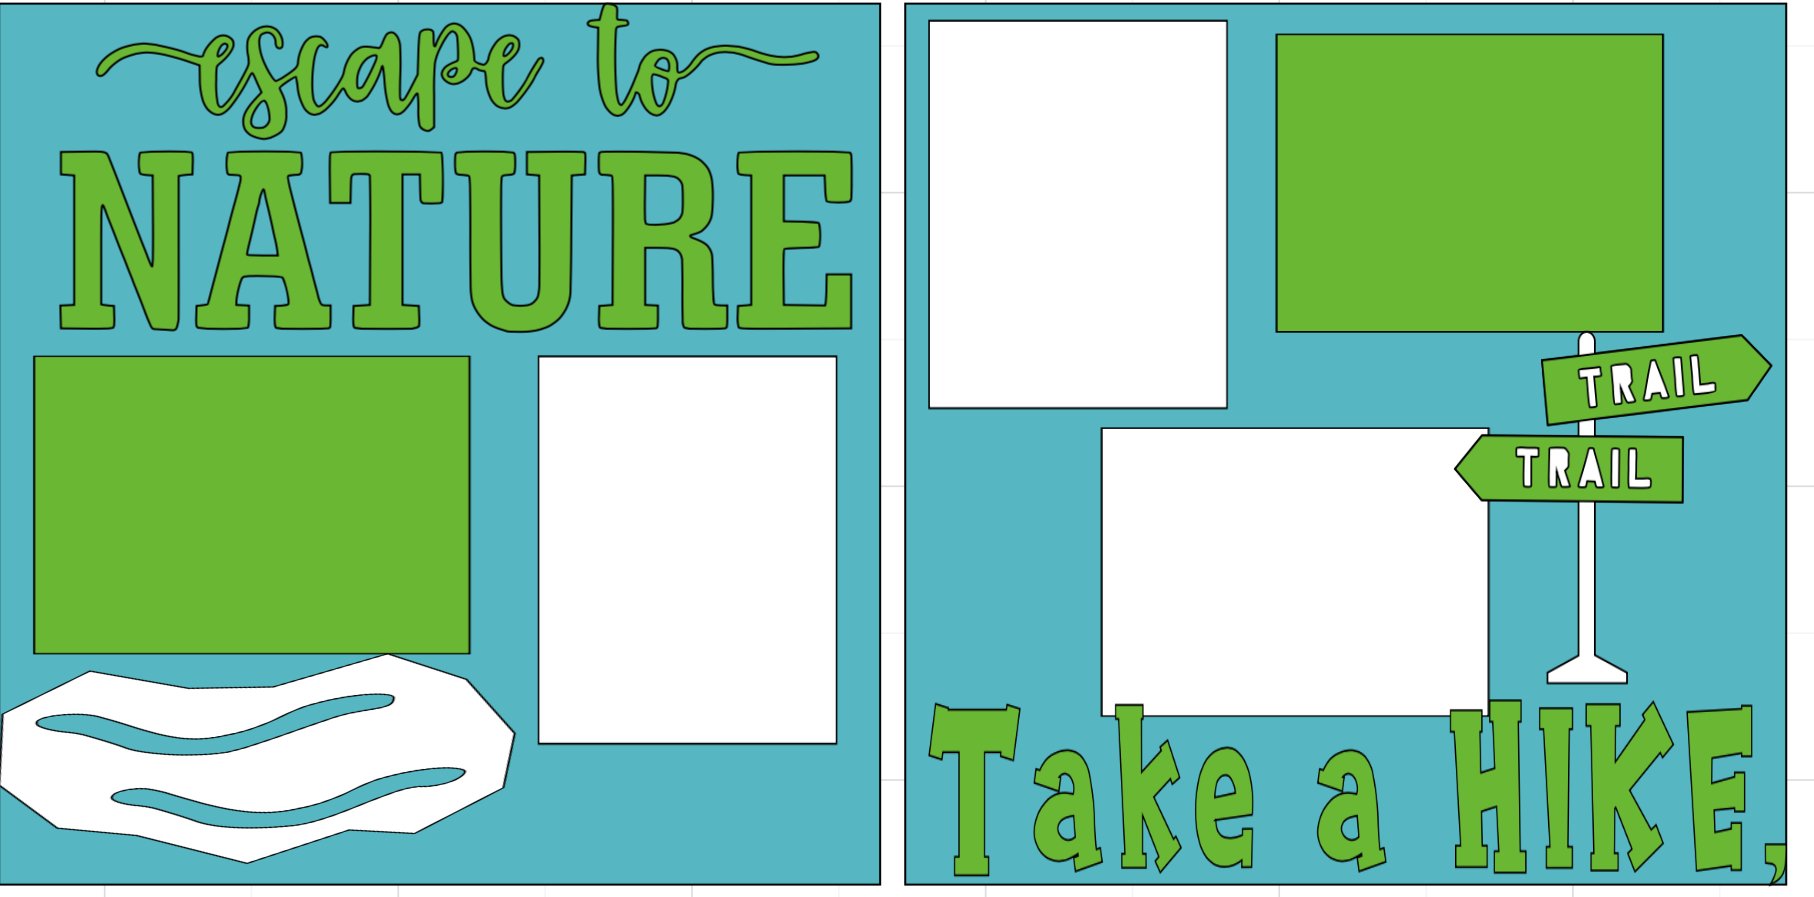 Escape to nature hiking   page kit